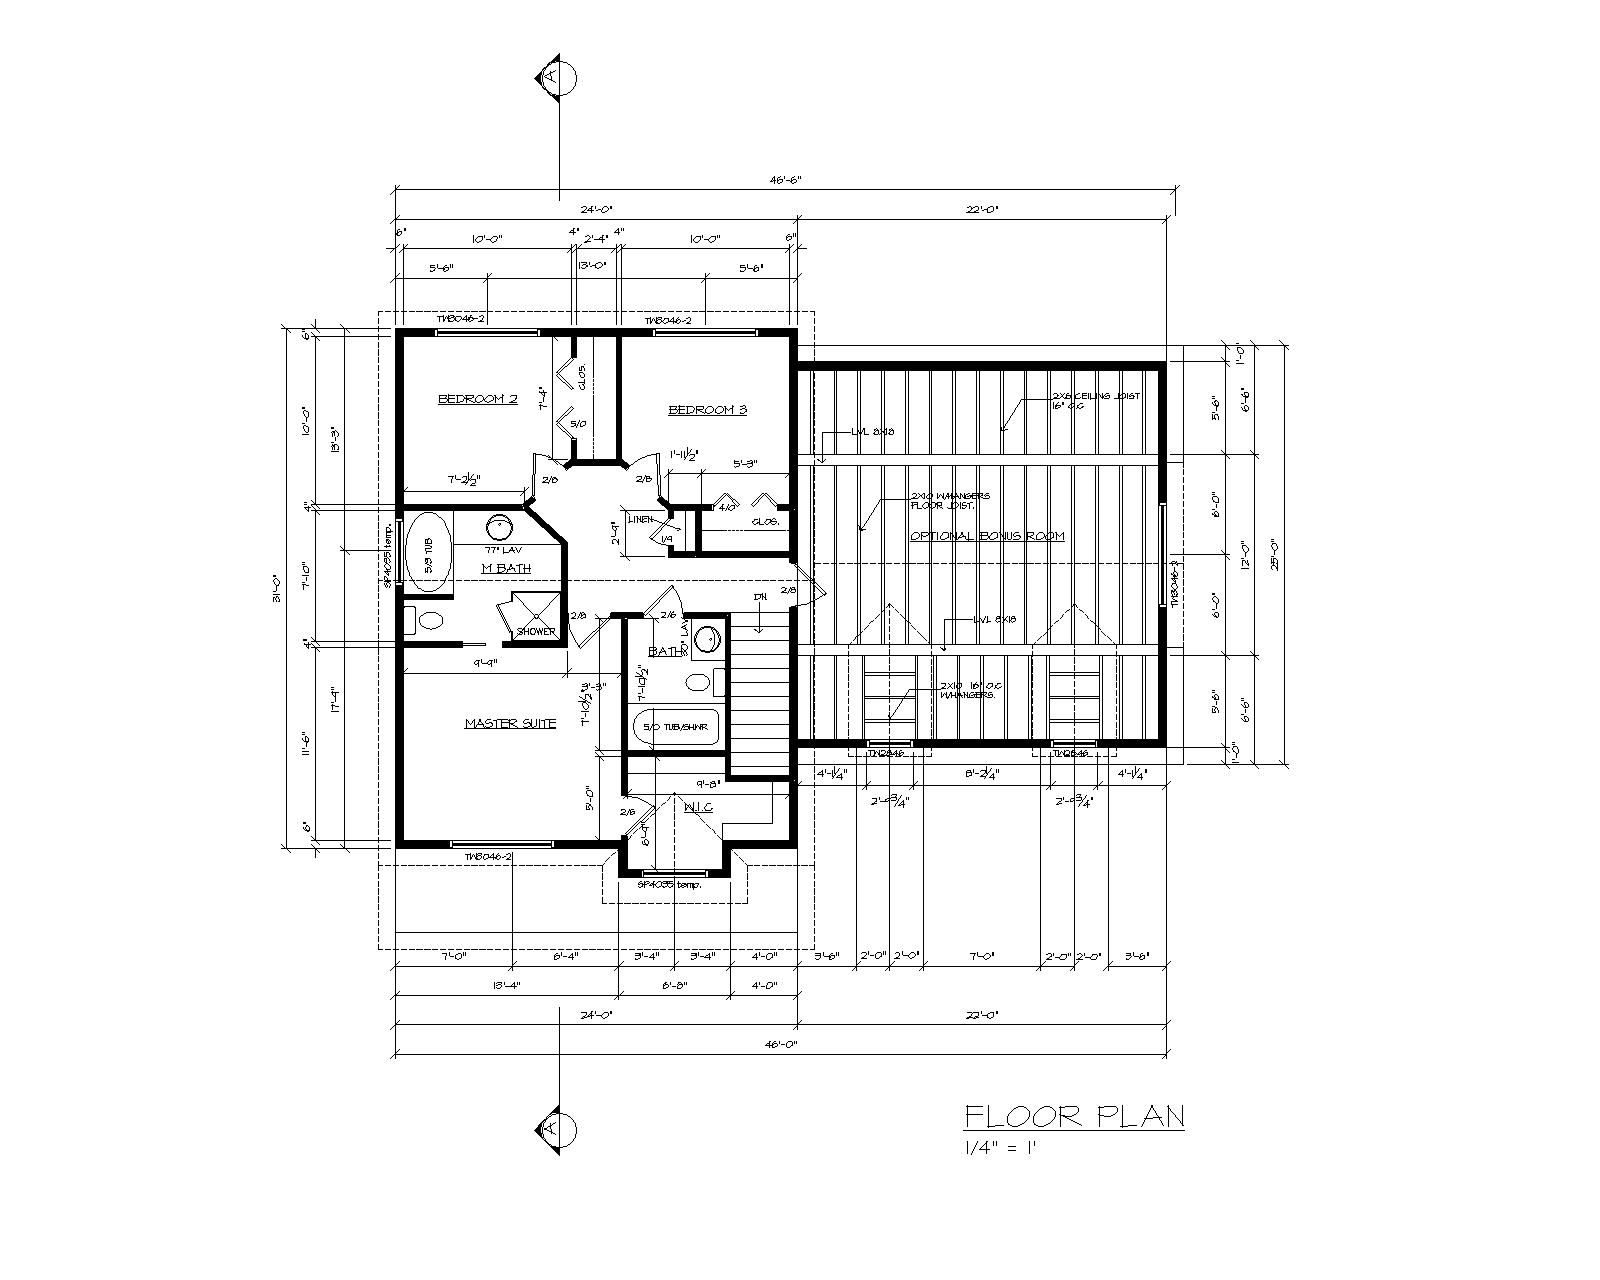 Mohammed zaheer ud deen ahmed tauqeer autocad a for Cad plans